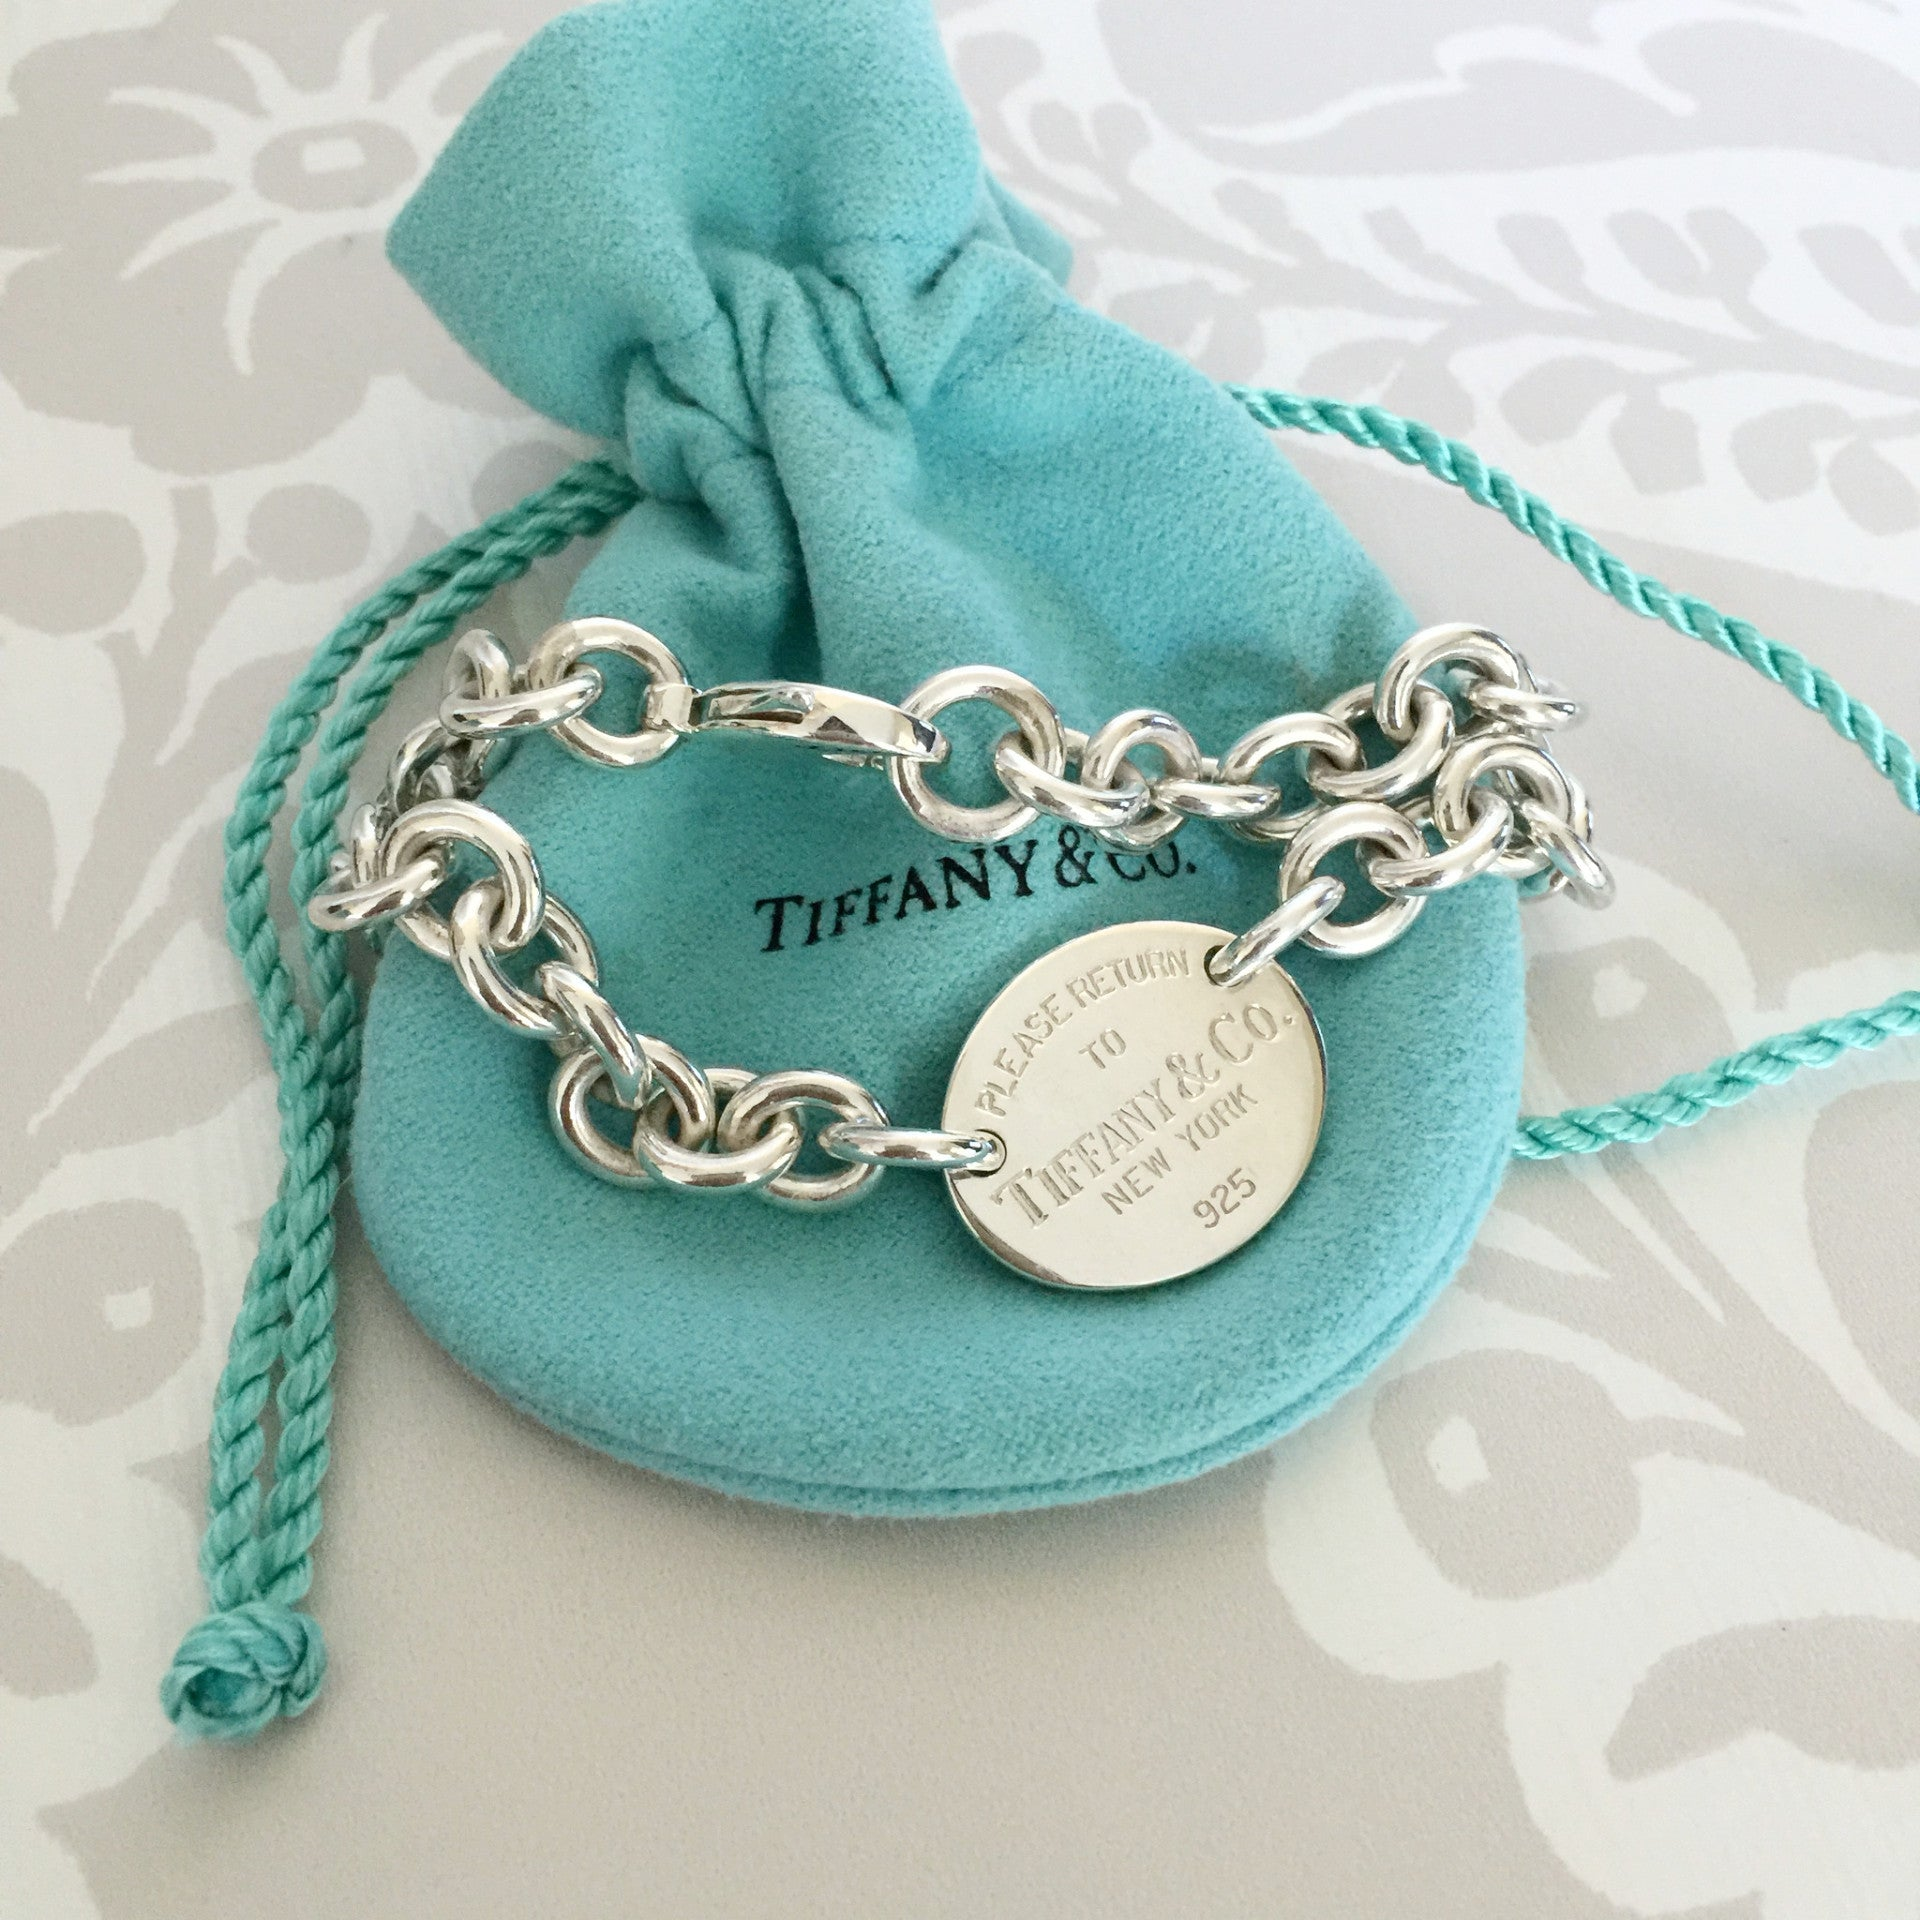 Authentic TIFFANY & CO 1837 Oval Tag Bracelelt